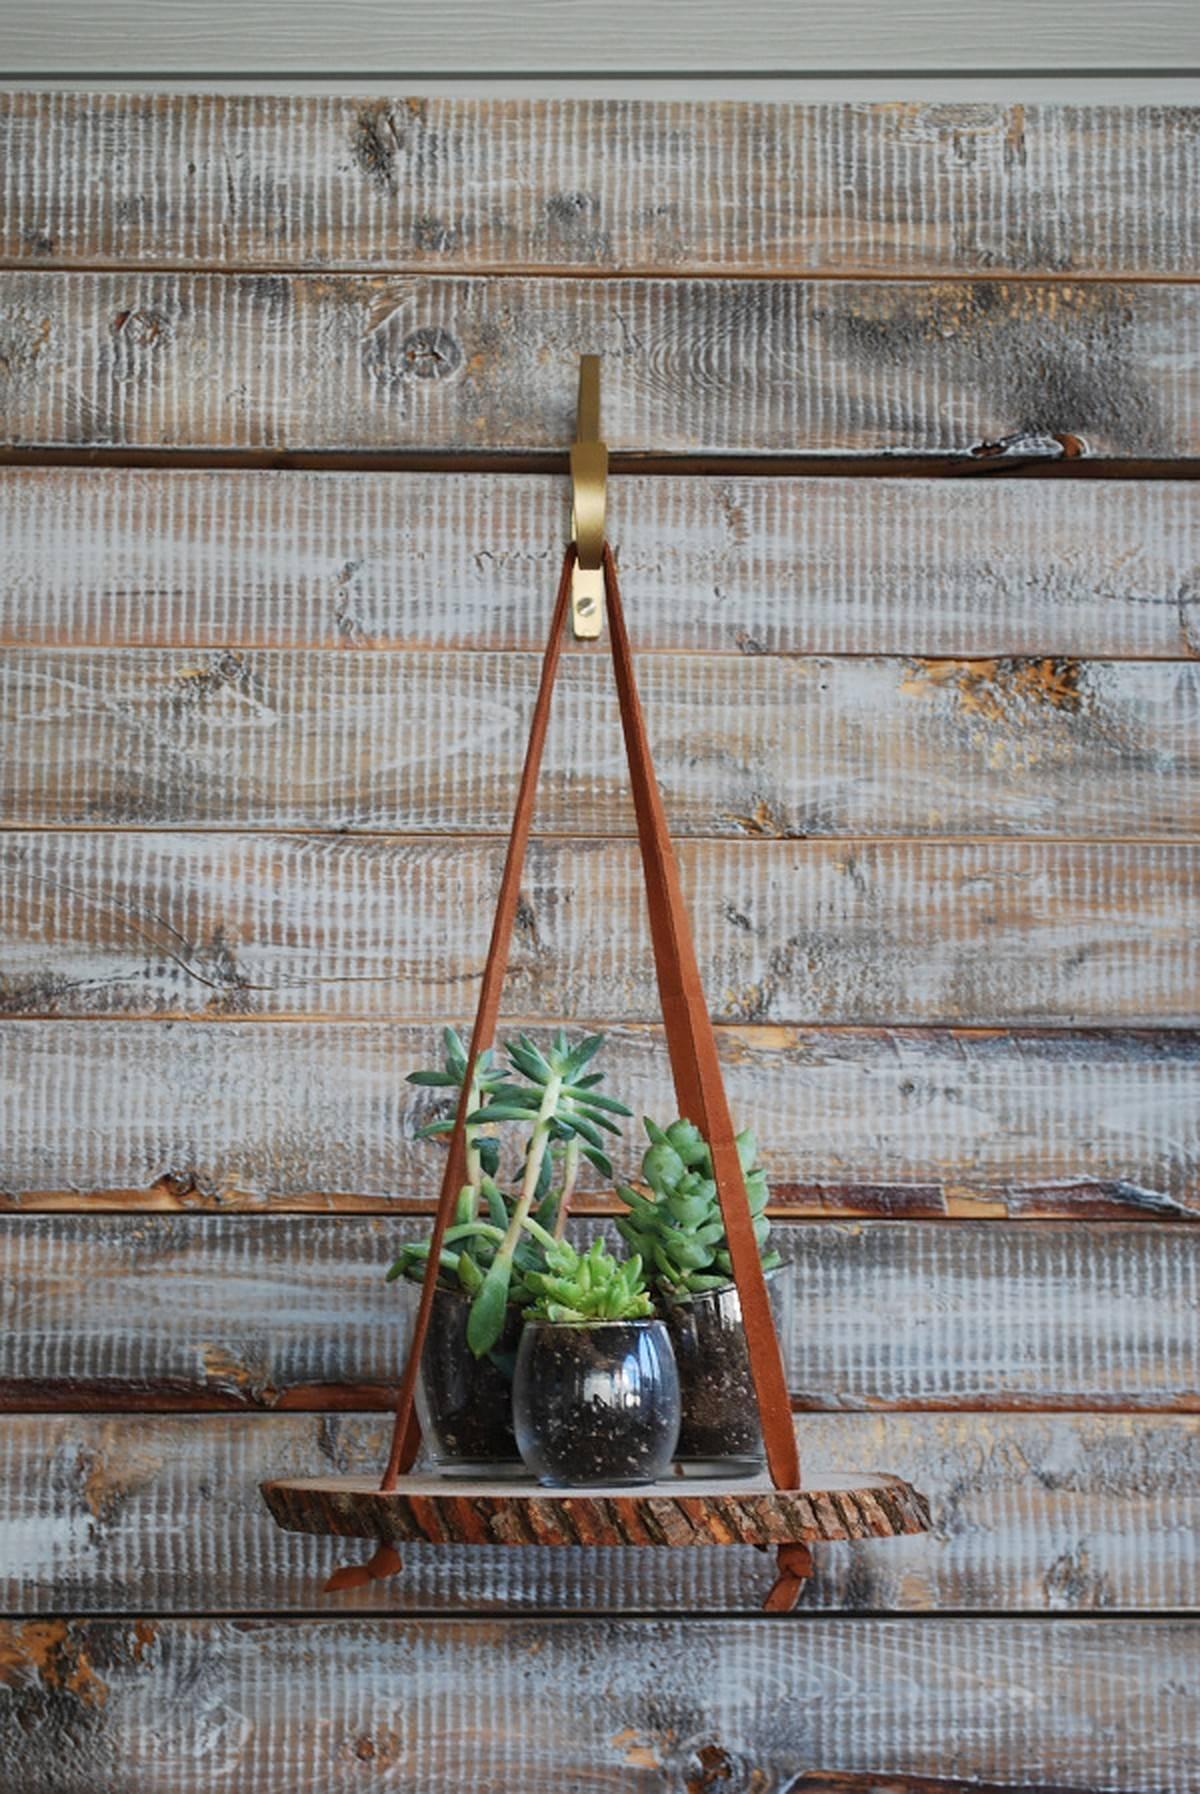 Three potted plants in glass hanging on wood slice